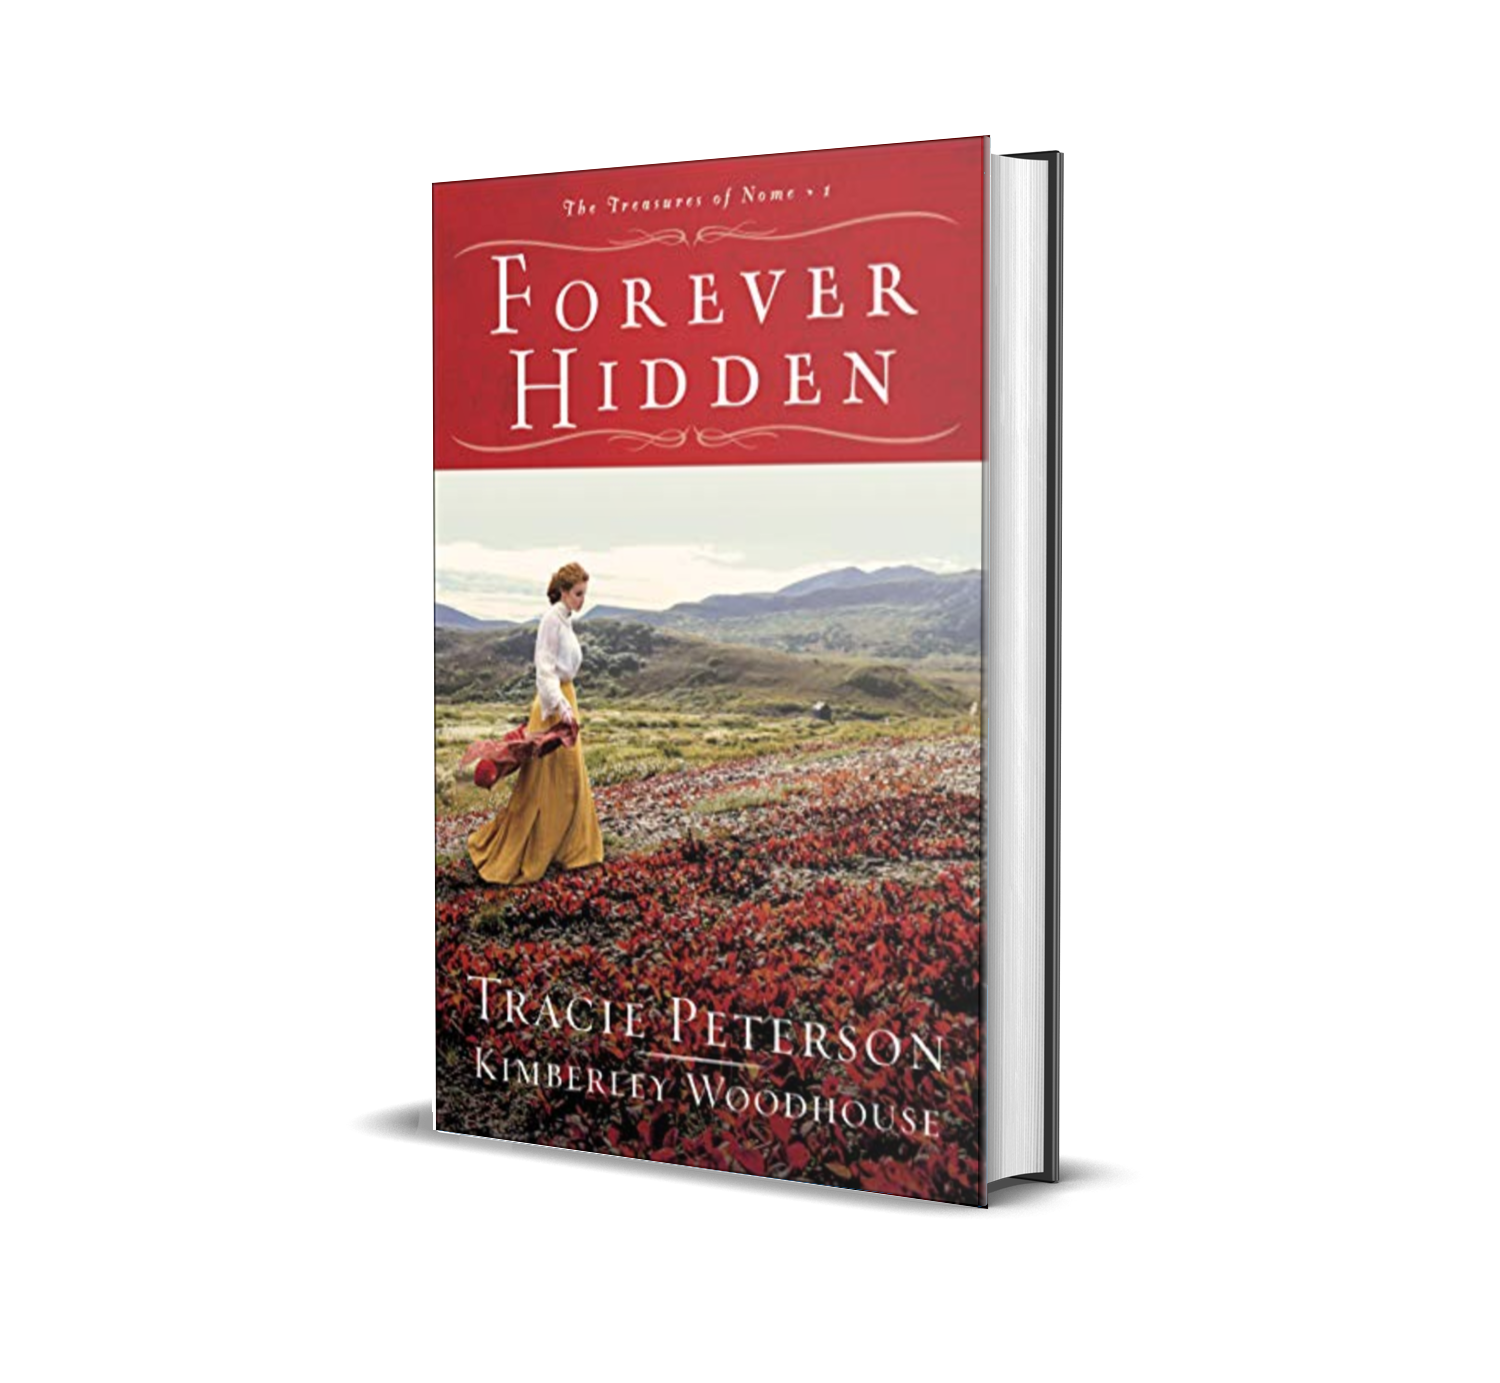 Forever Hidden  by Tracie Peterson, Kimberley Woodhouse